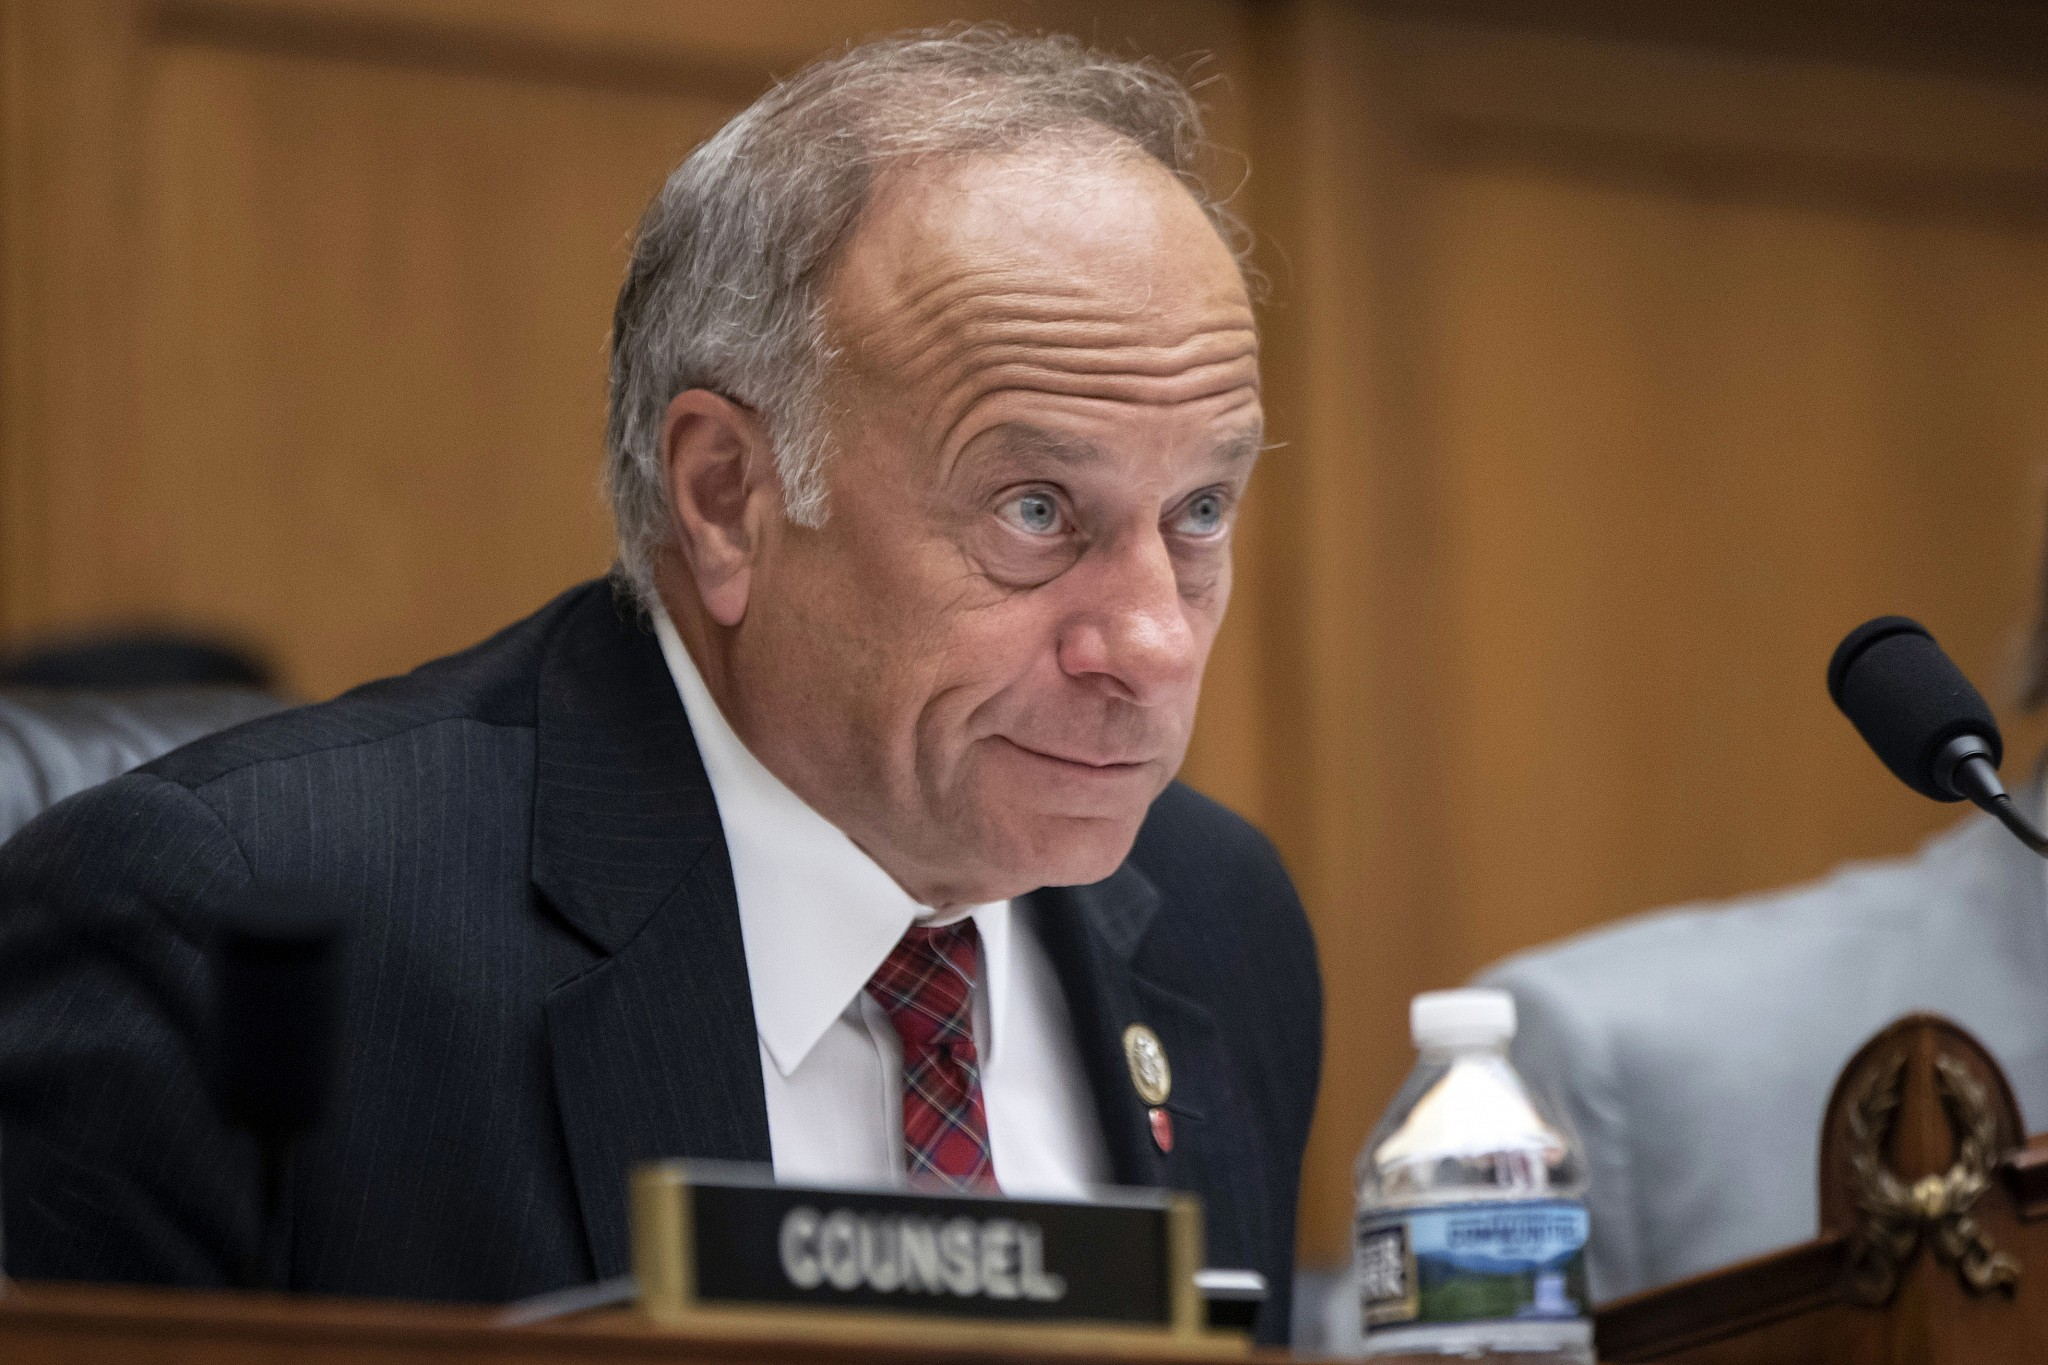 House rebukes Republican Steve King over white supremacist remarks